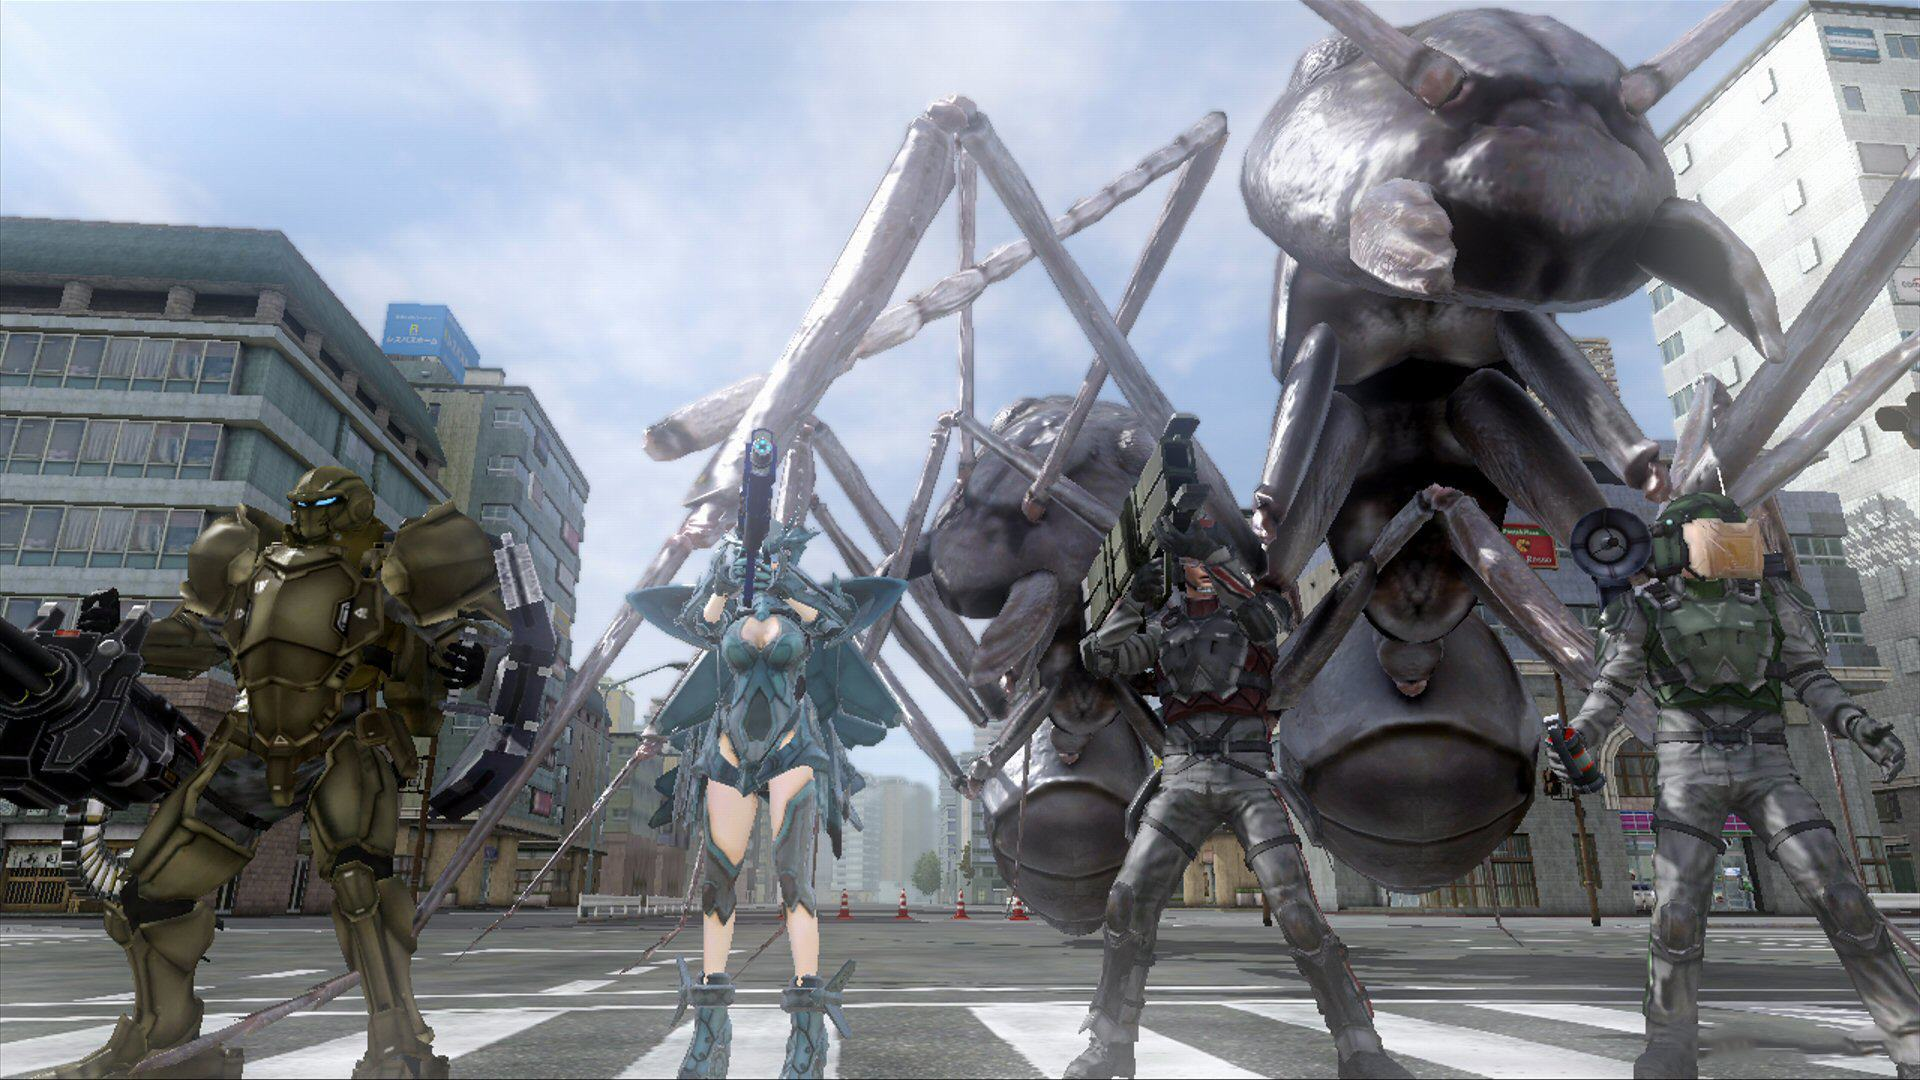 Earth defense force 2 portable review